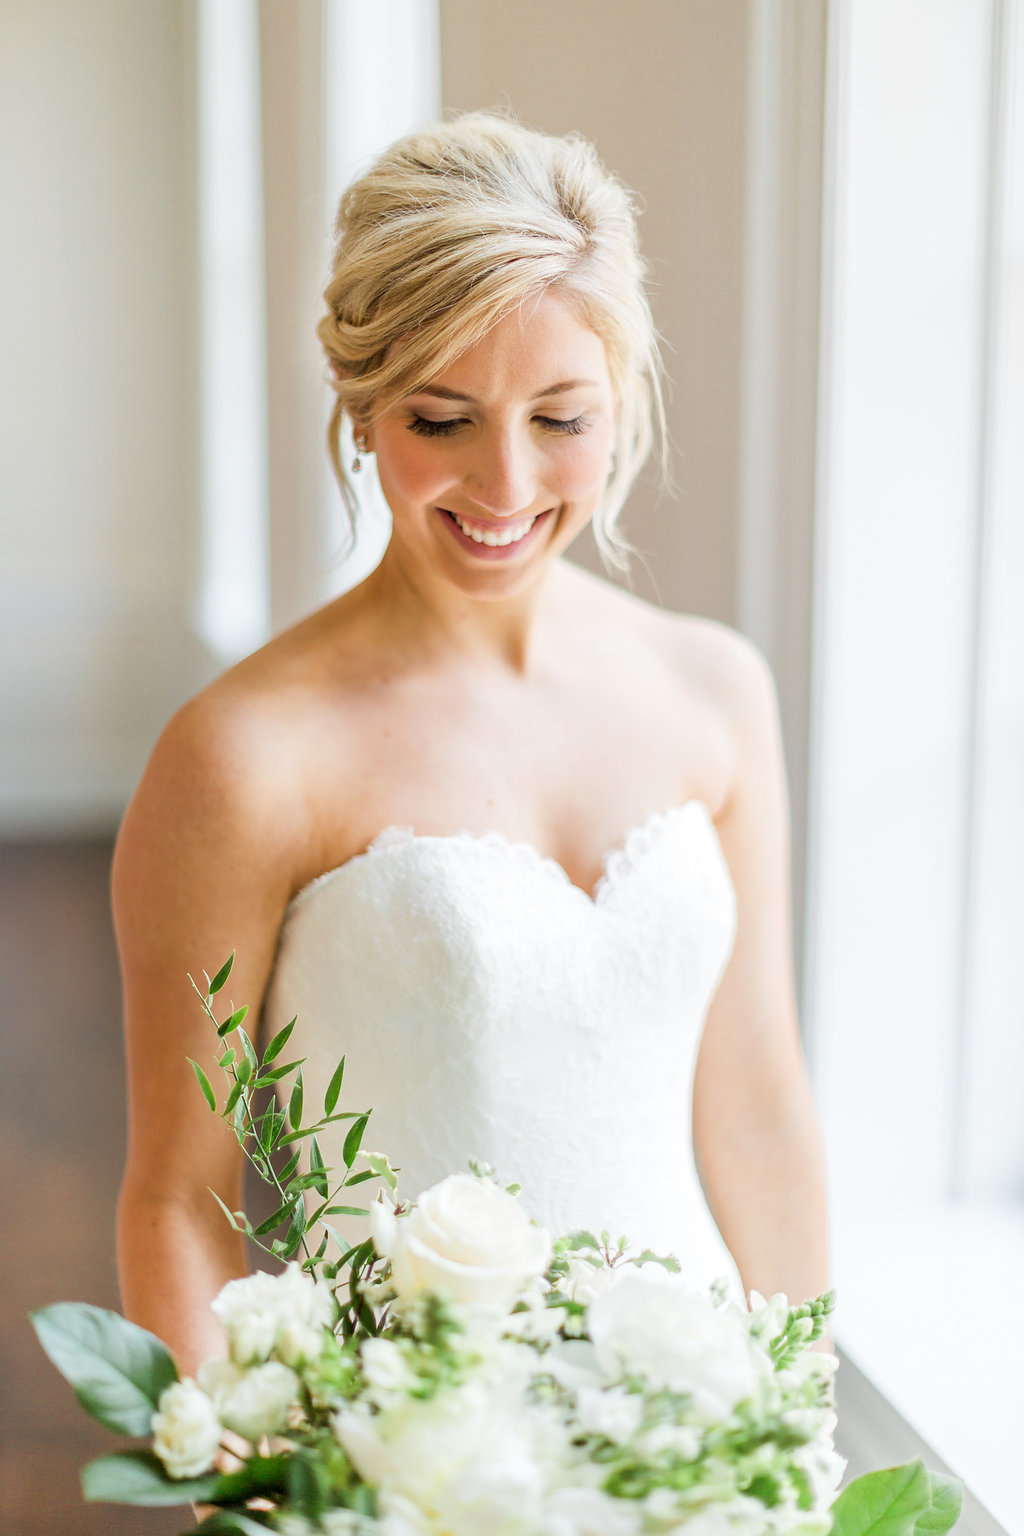 Courtney&DavidWedding_RusticWhite_034.jpg